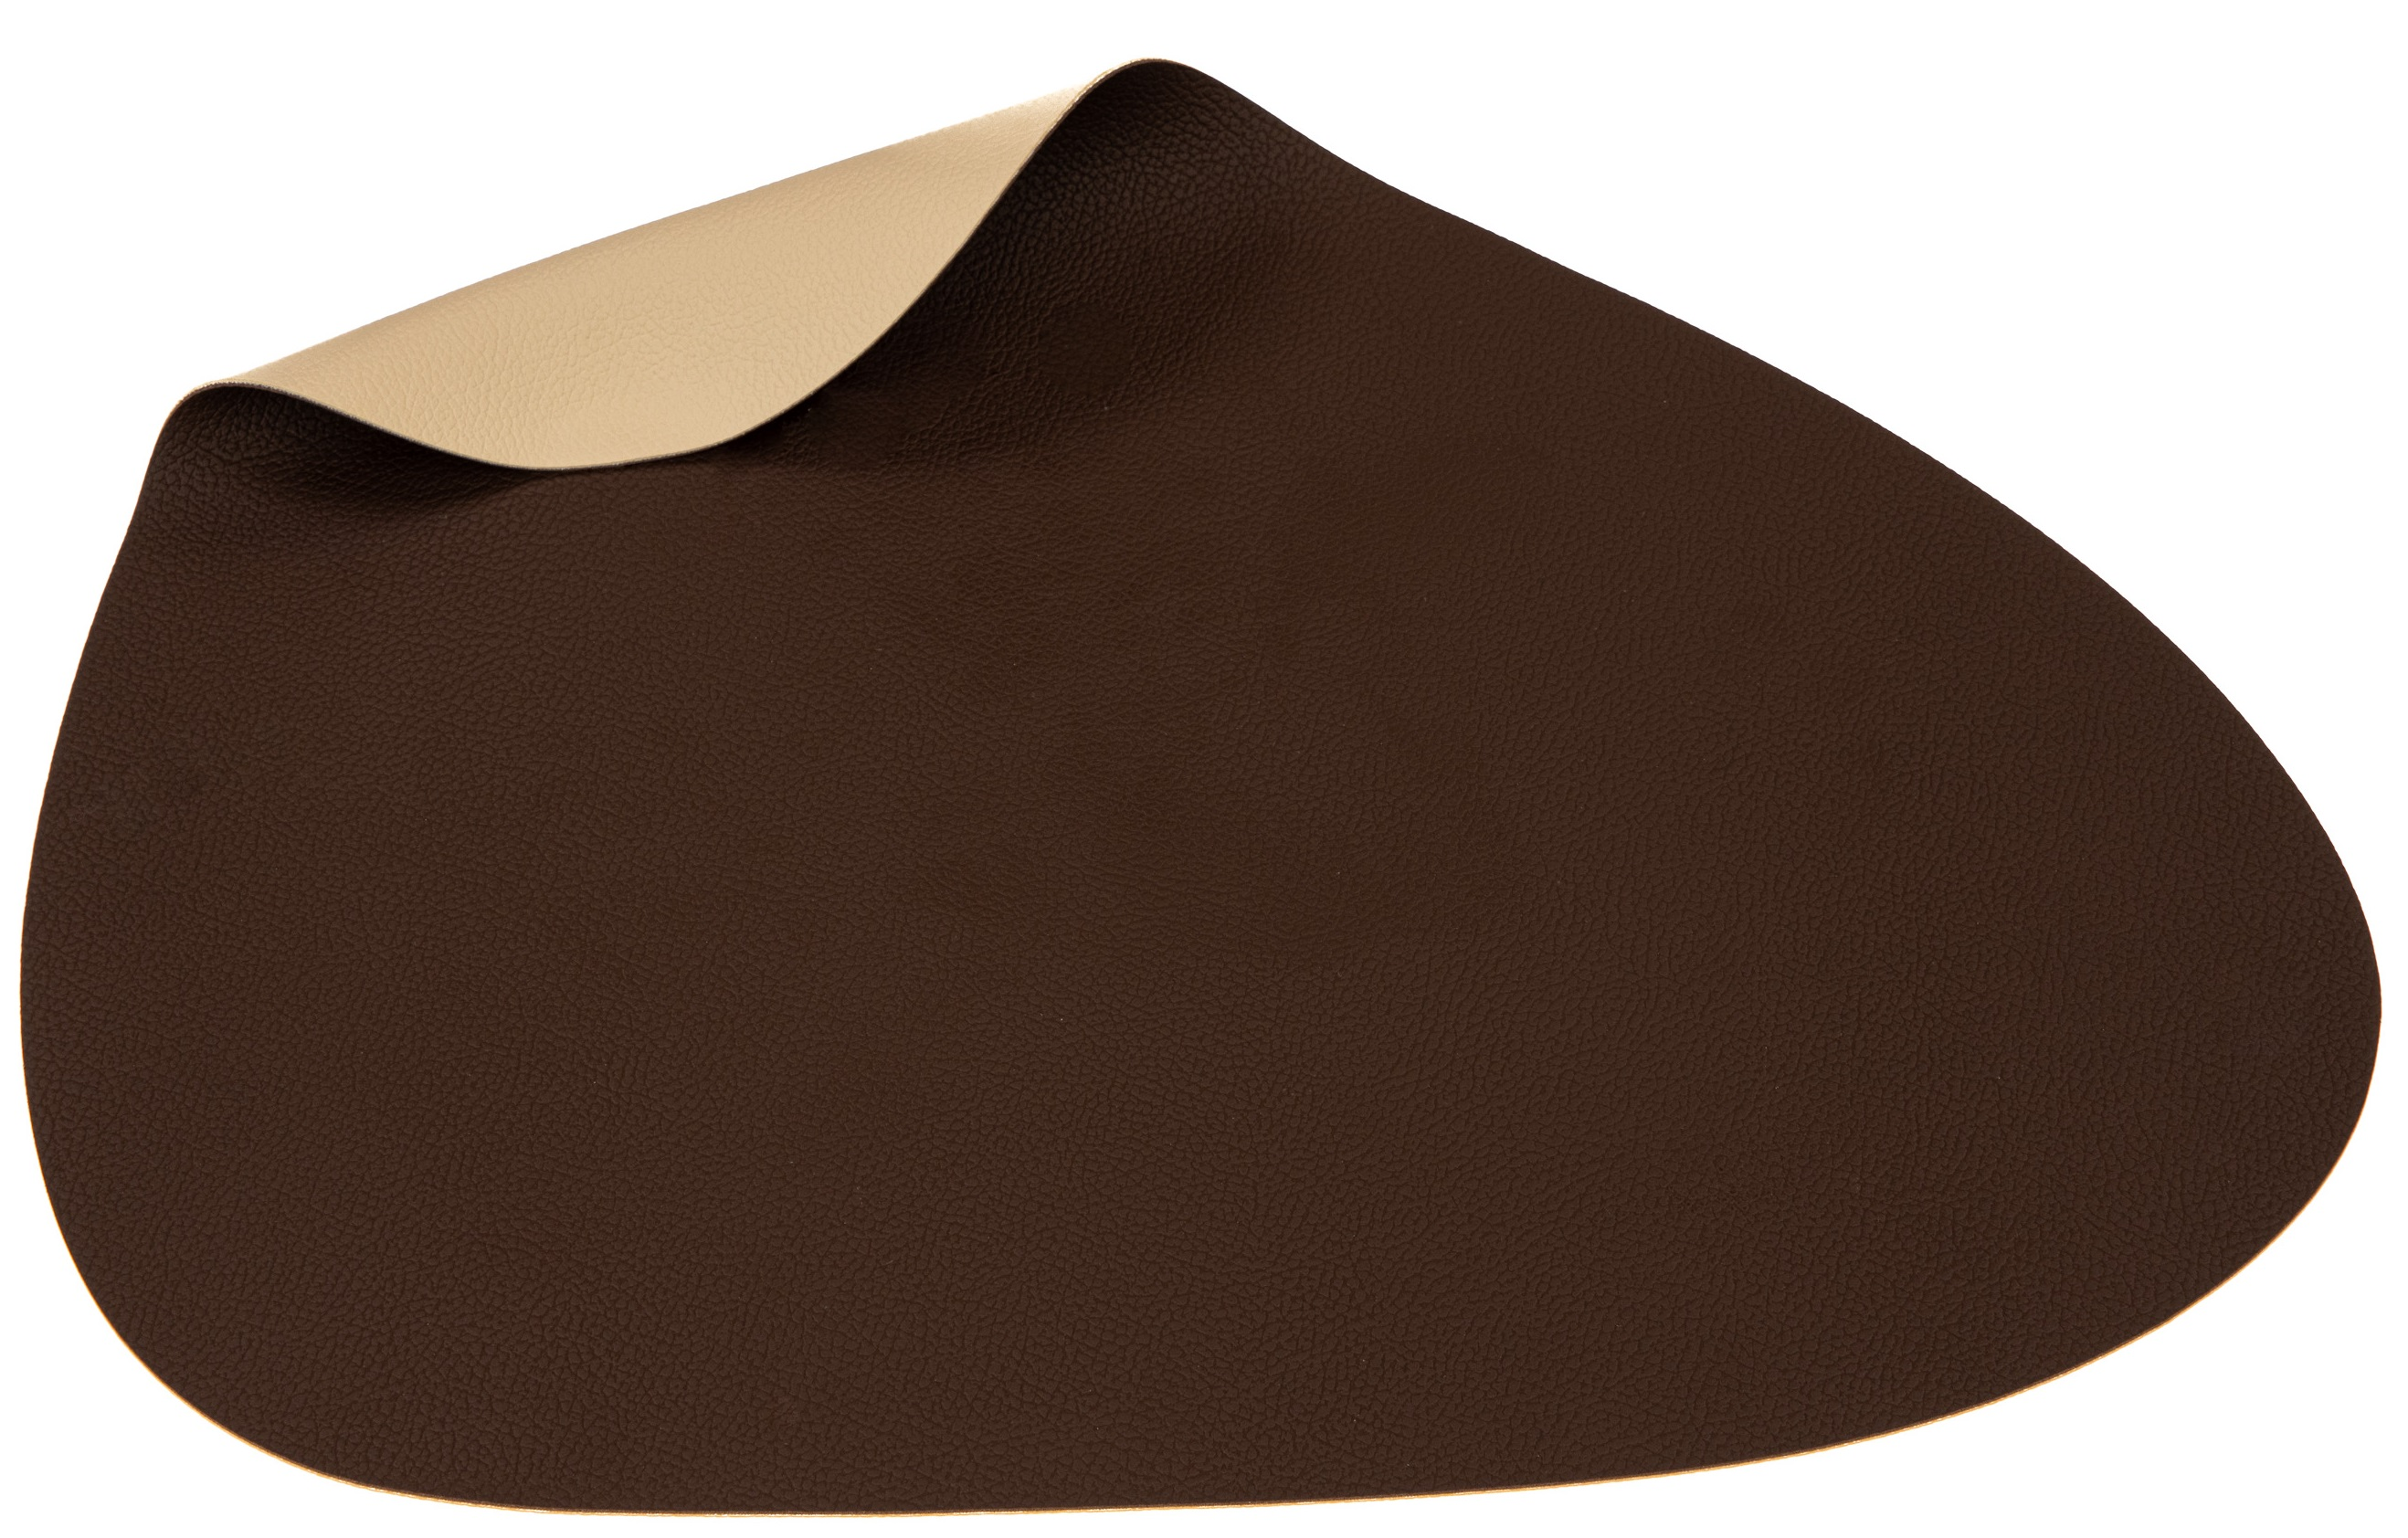 Jay Hill Placemat Leer Bruin Zand Curve 37 x 44 cm